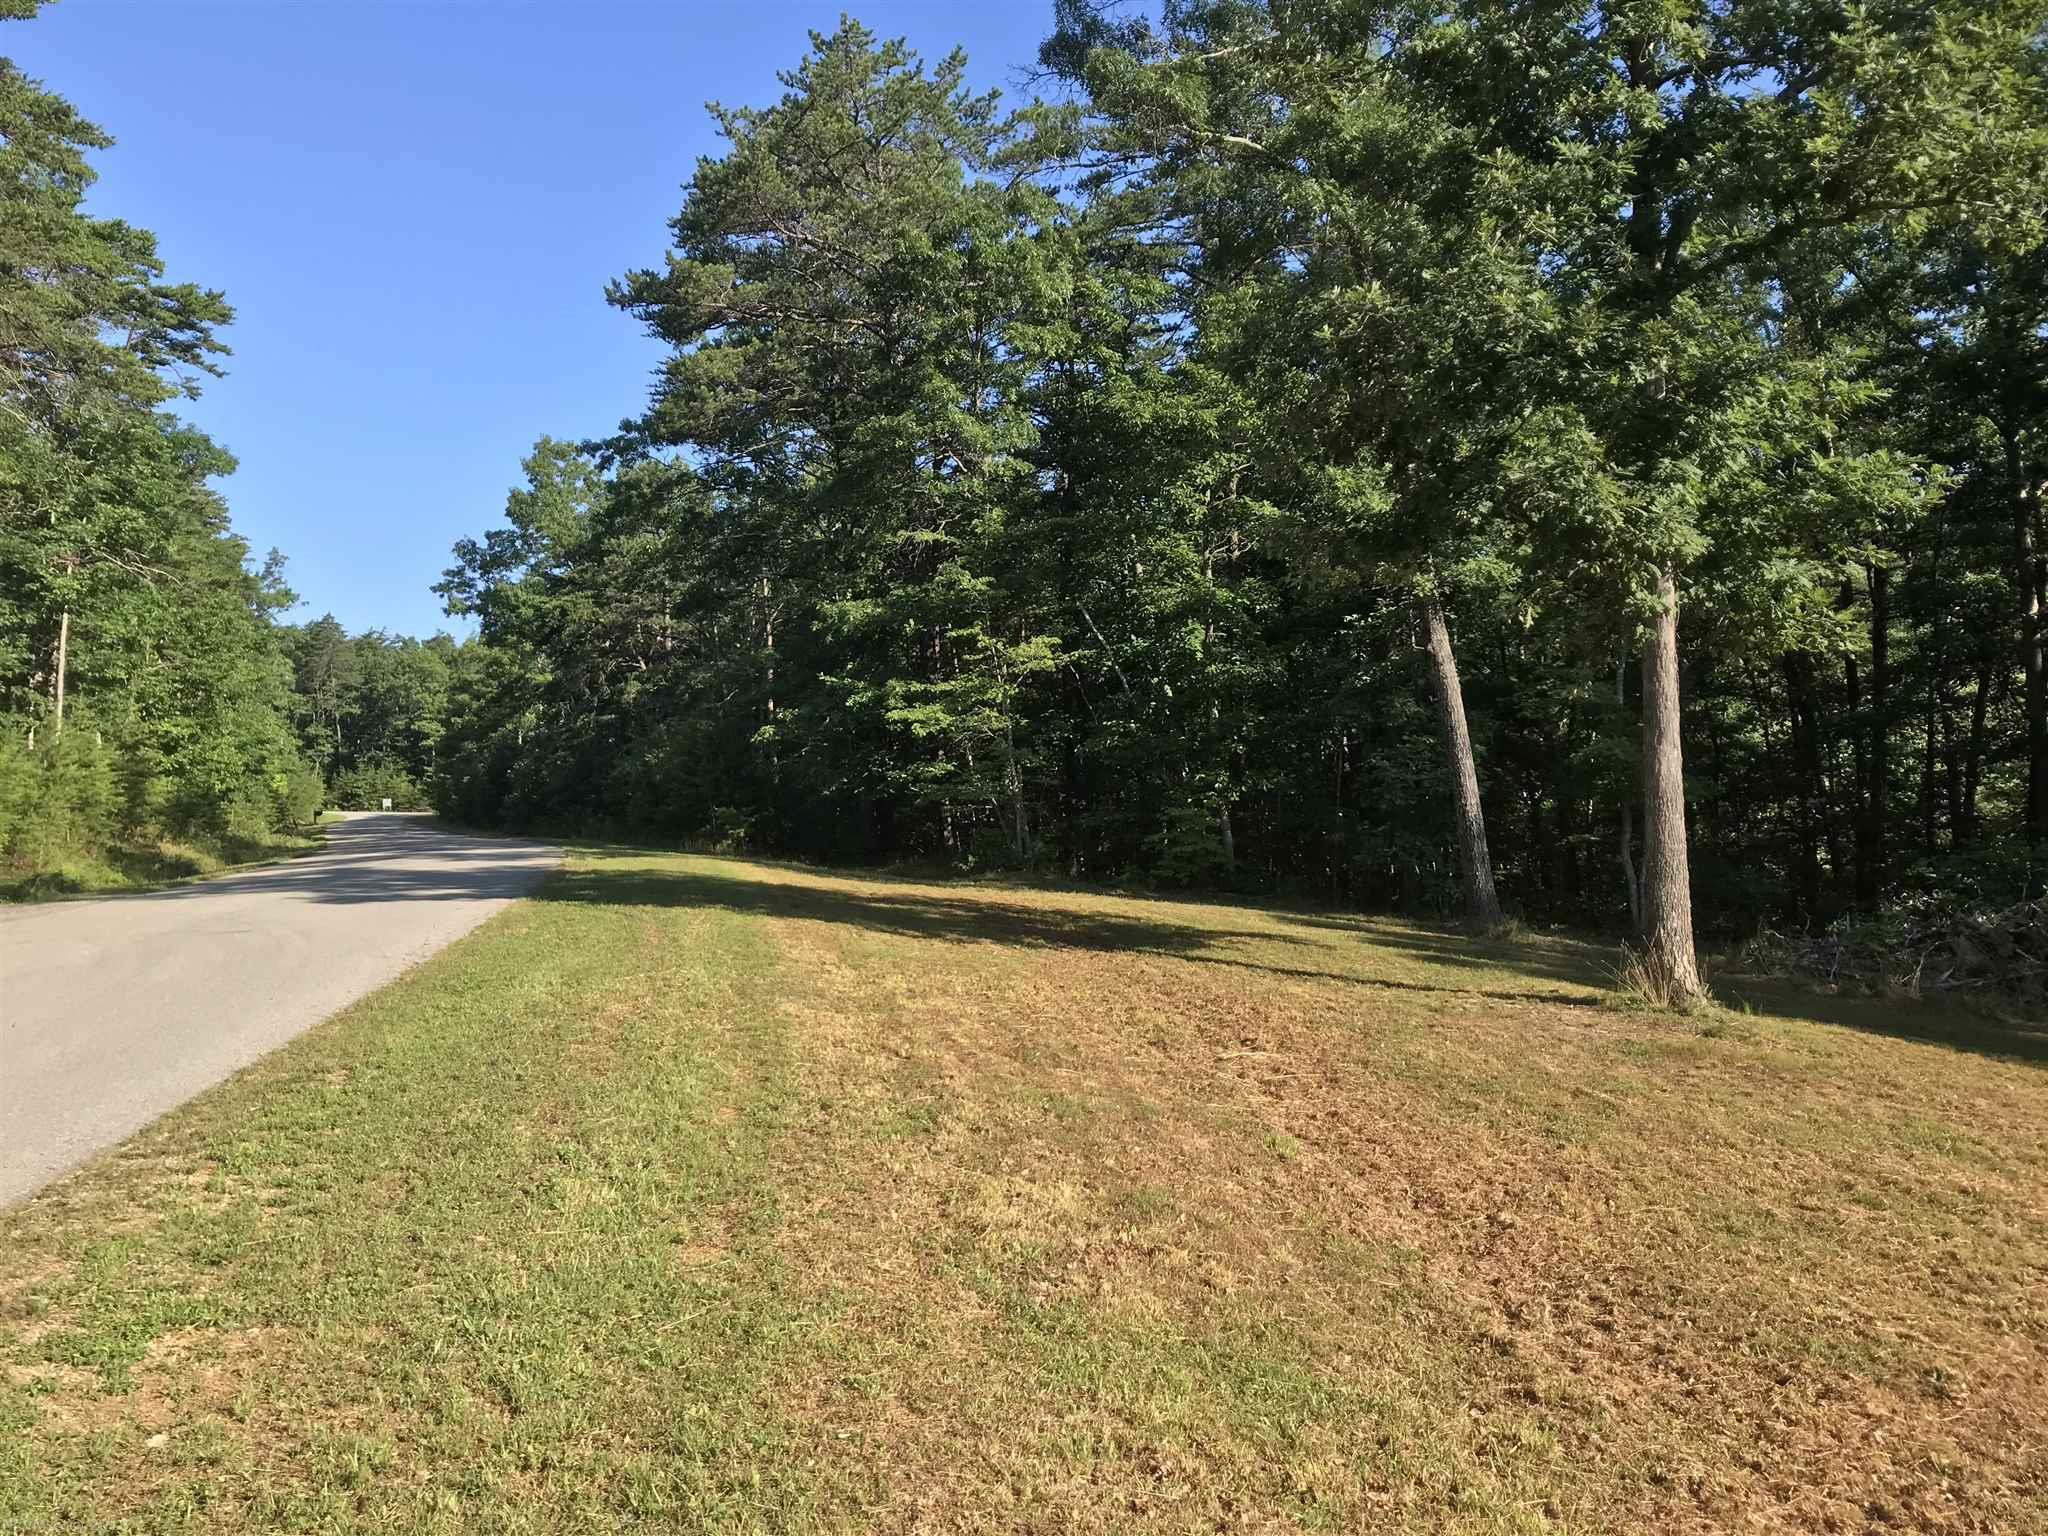 Very nice lot in The Ridges subdivision, with both cleared and wooded acreage. Lot is just shy of 3.5ac, has been cleared for a building site, and offers tremendous mountain views. Perfectly situated between both Roanoke and the New River Valley, with easy access to both areas. Build your dream home in one of Montgomery County's most exclusive neighborhoods, The Ridges. Property is set up for private well and septic, see Attached Documents for suggested location.